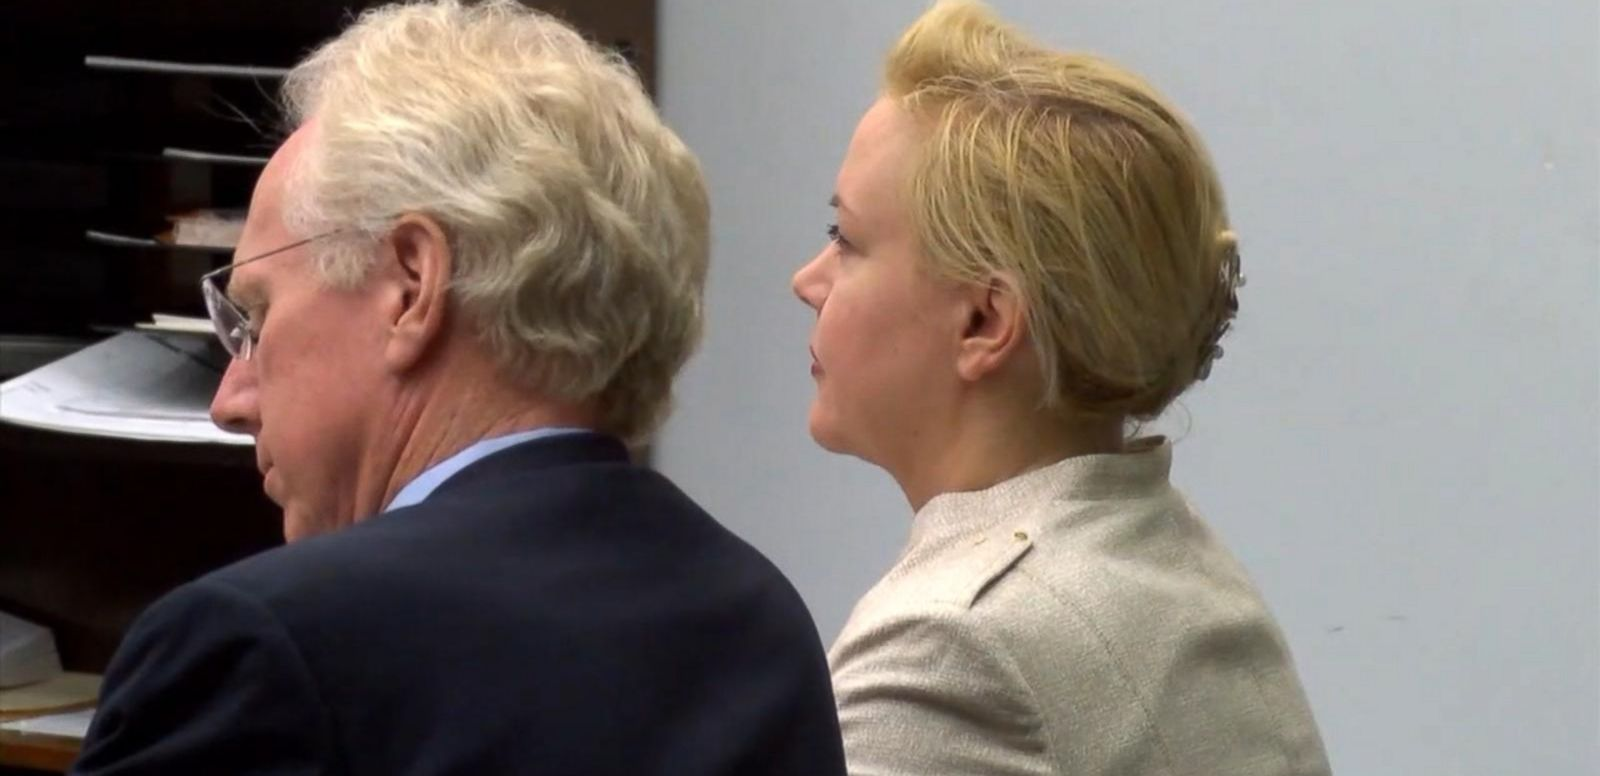 Woman Found Guilty For Second-Degree Murder of Husband